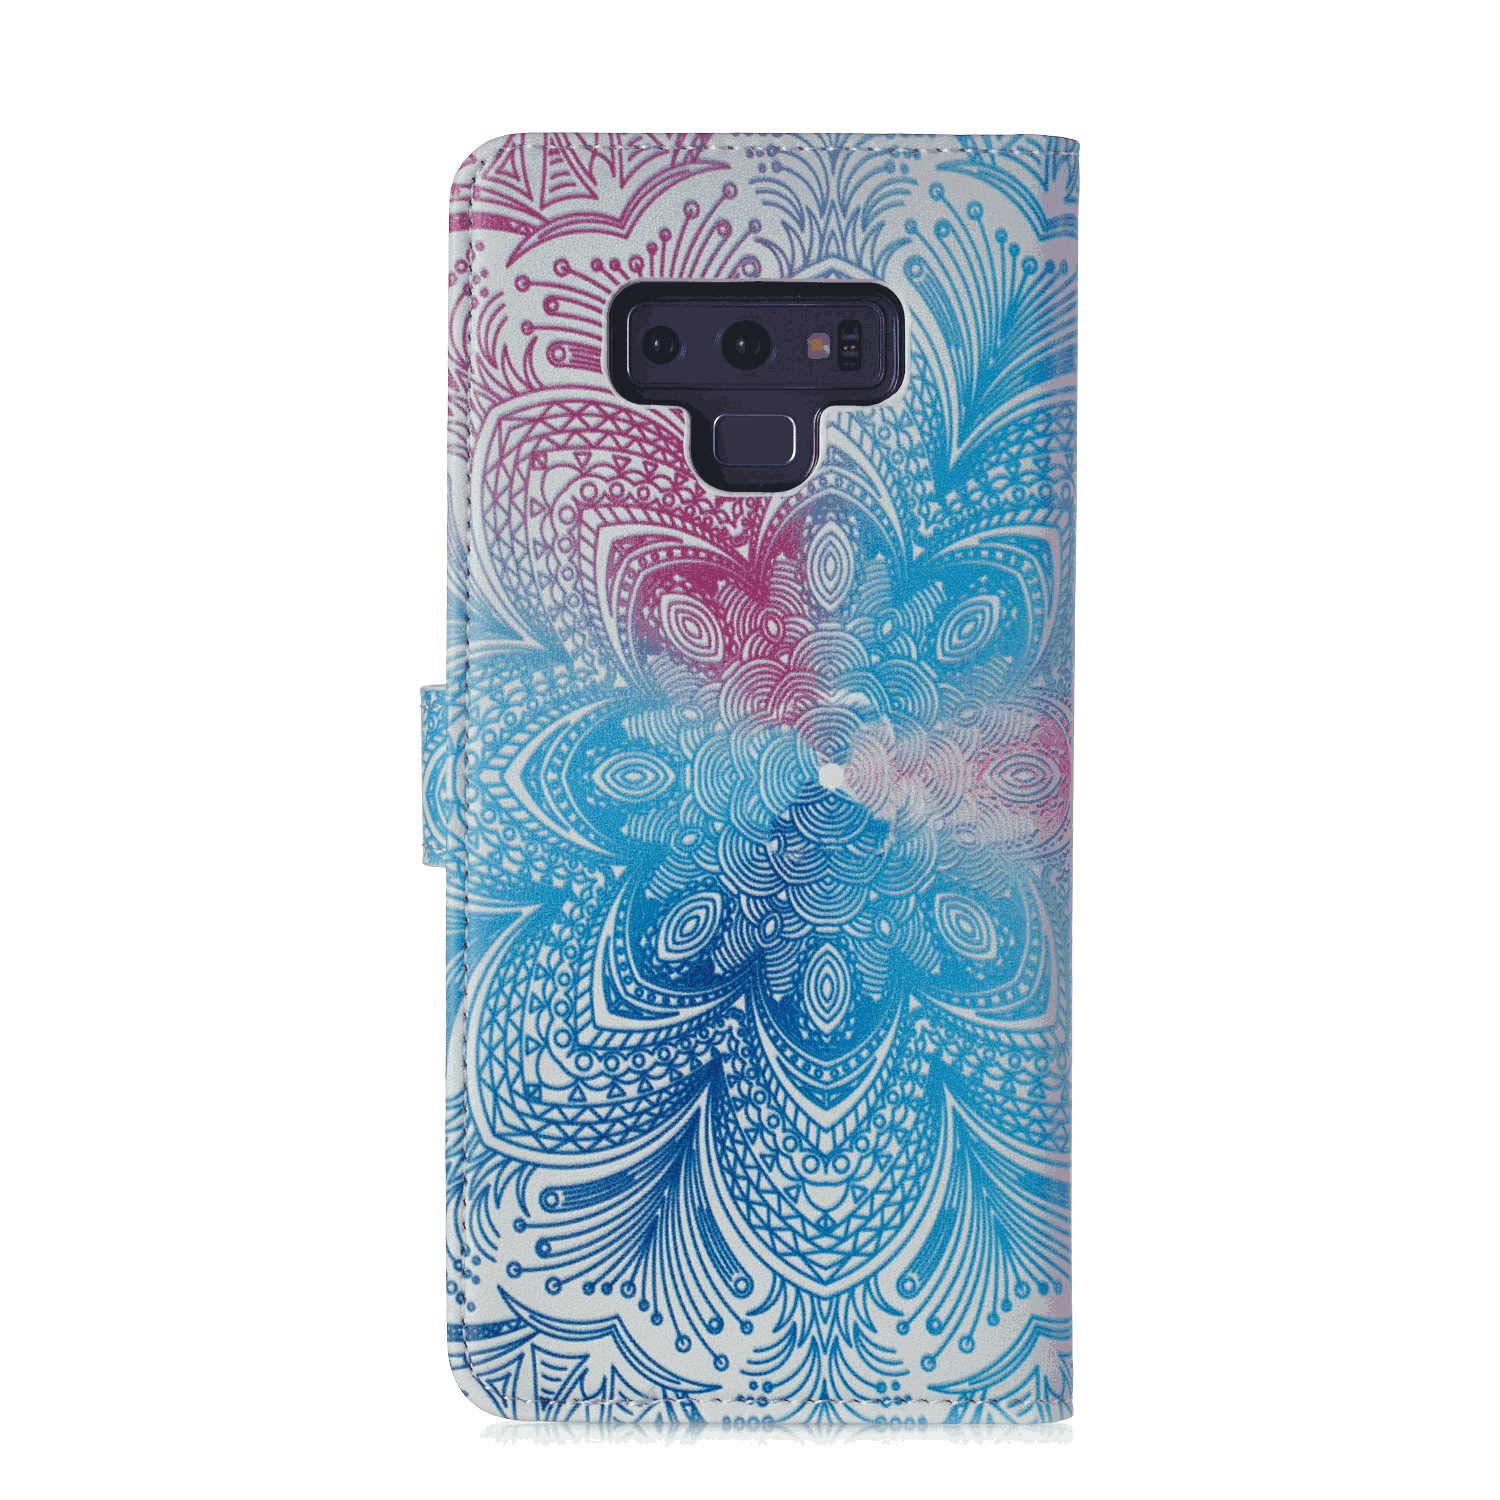 Leather Case Compatible with Samsung Galaxy S9 with Waterproof Case for Cellphone Flip Cover for Samsung Galaxy S9